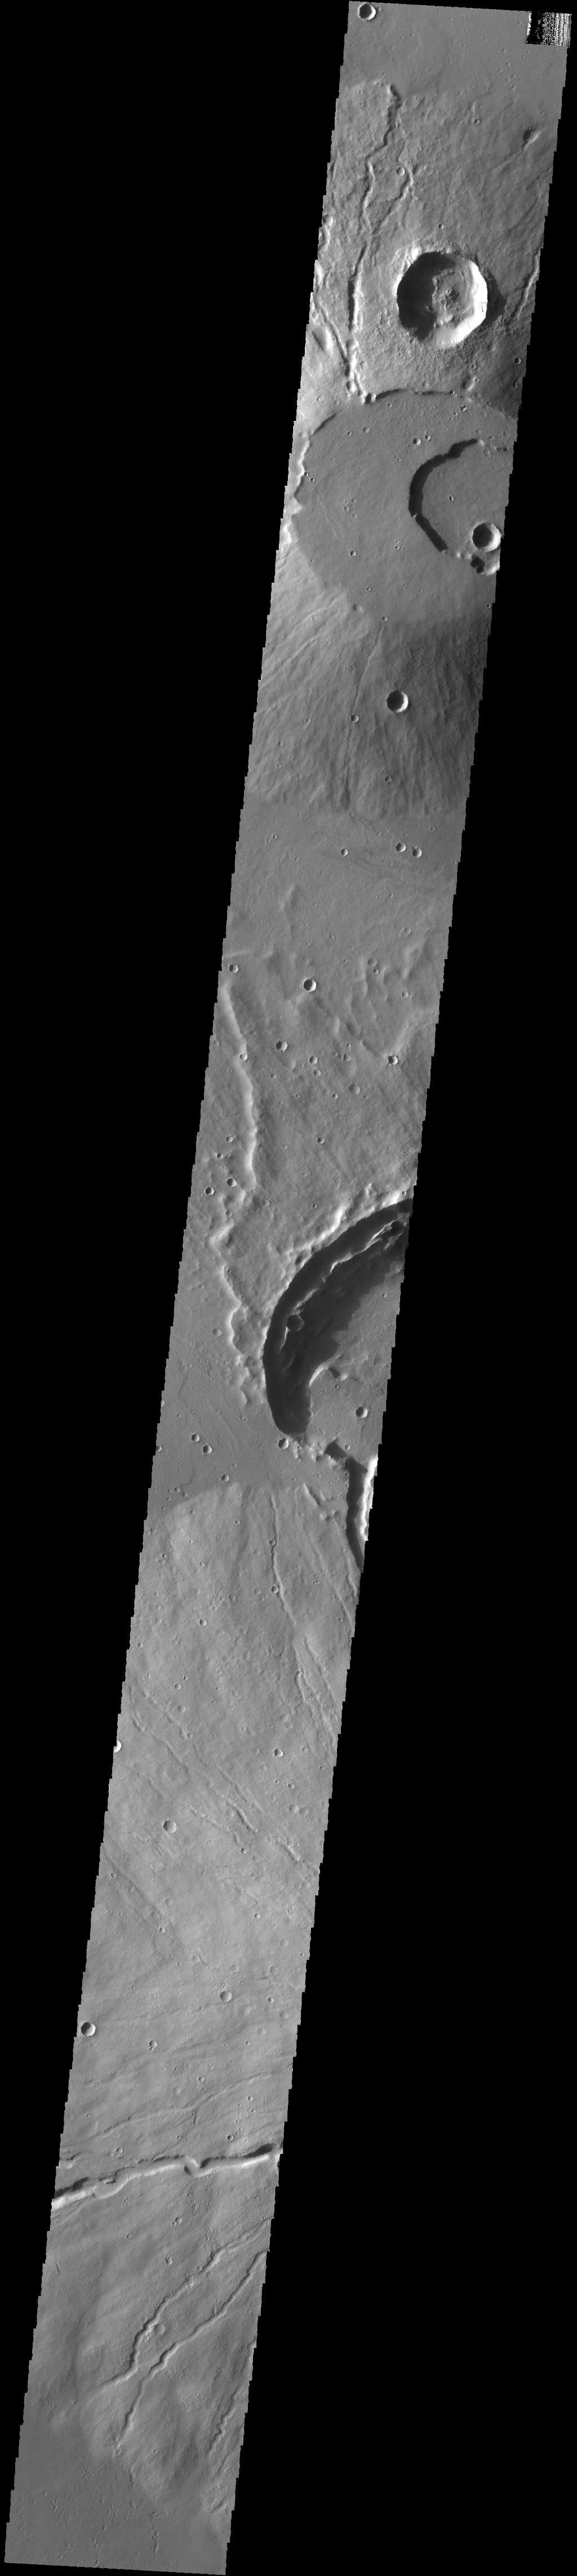 This image captured by NASA's 2001 Mars Odyssey spacecraft crosses the summit of Uranius Tholus, as well as the western flank of Ceraunius Tholus.